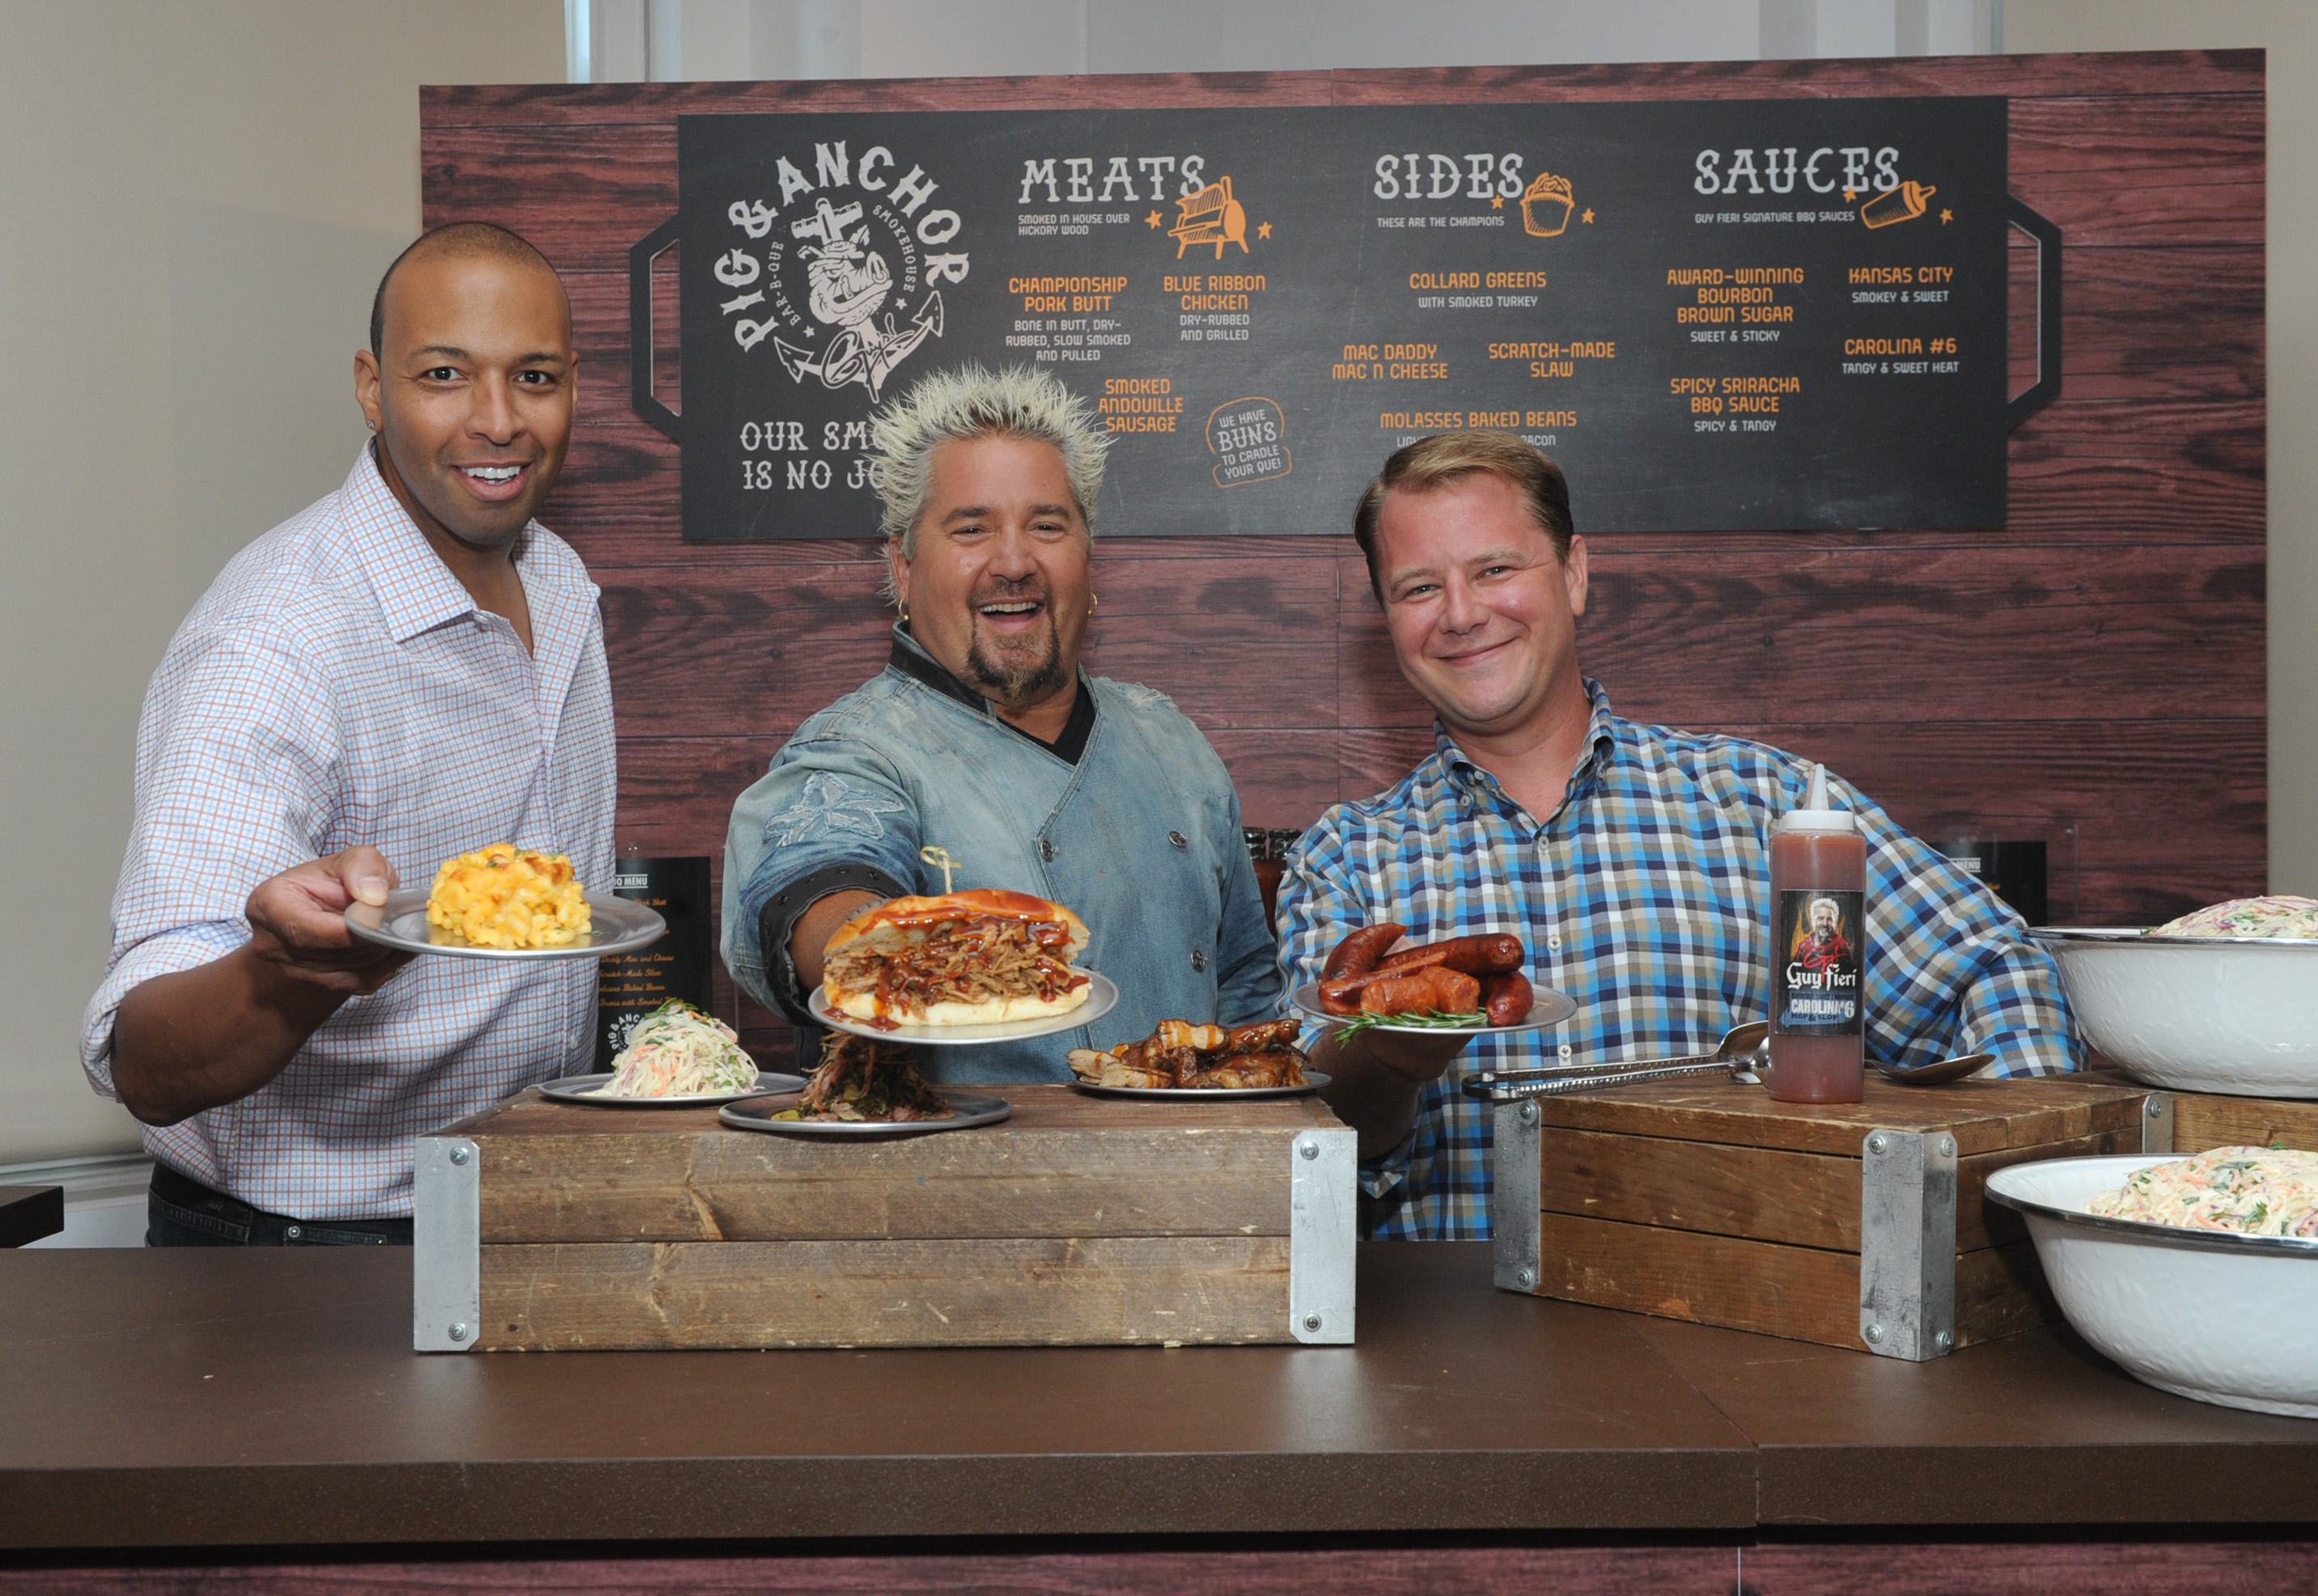 Carnival's First-Ever Summertime Beer-B-Que Highlighted by BBQ Created by Food Network Star Guy Fieri, Craft Beers from Country's Top Breweries